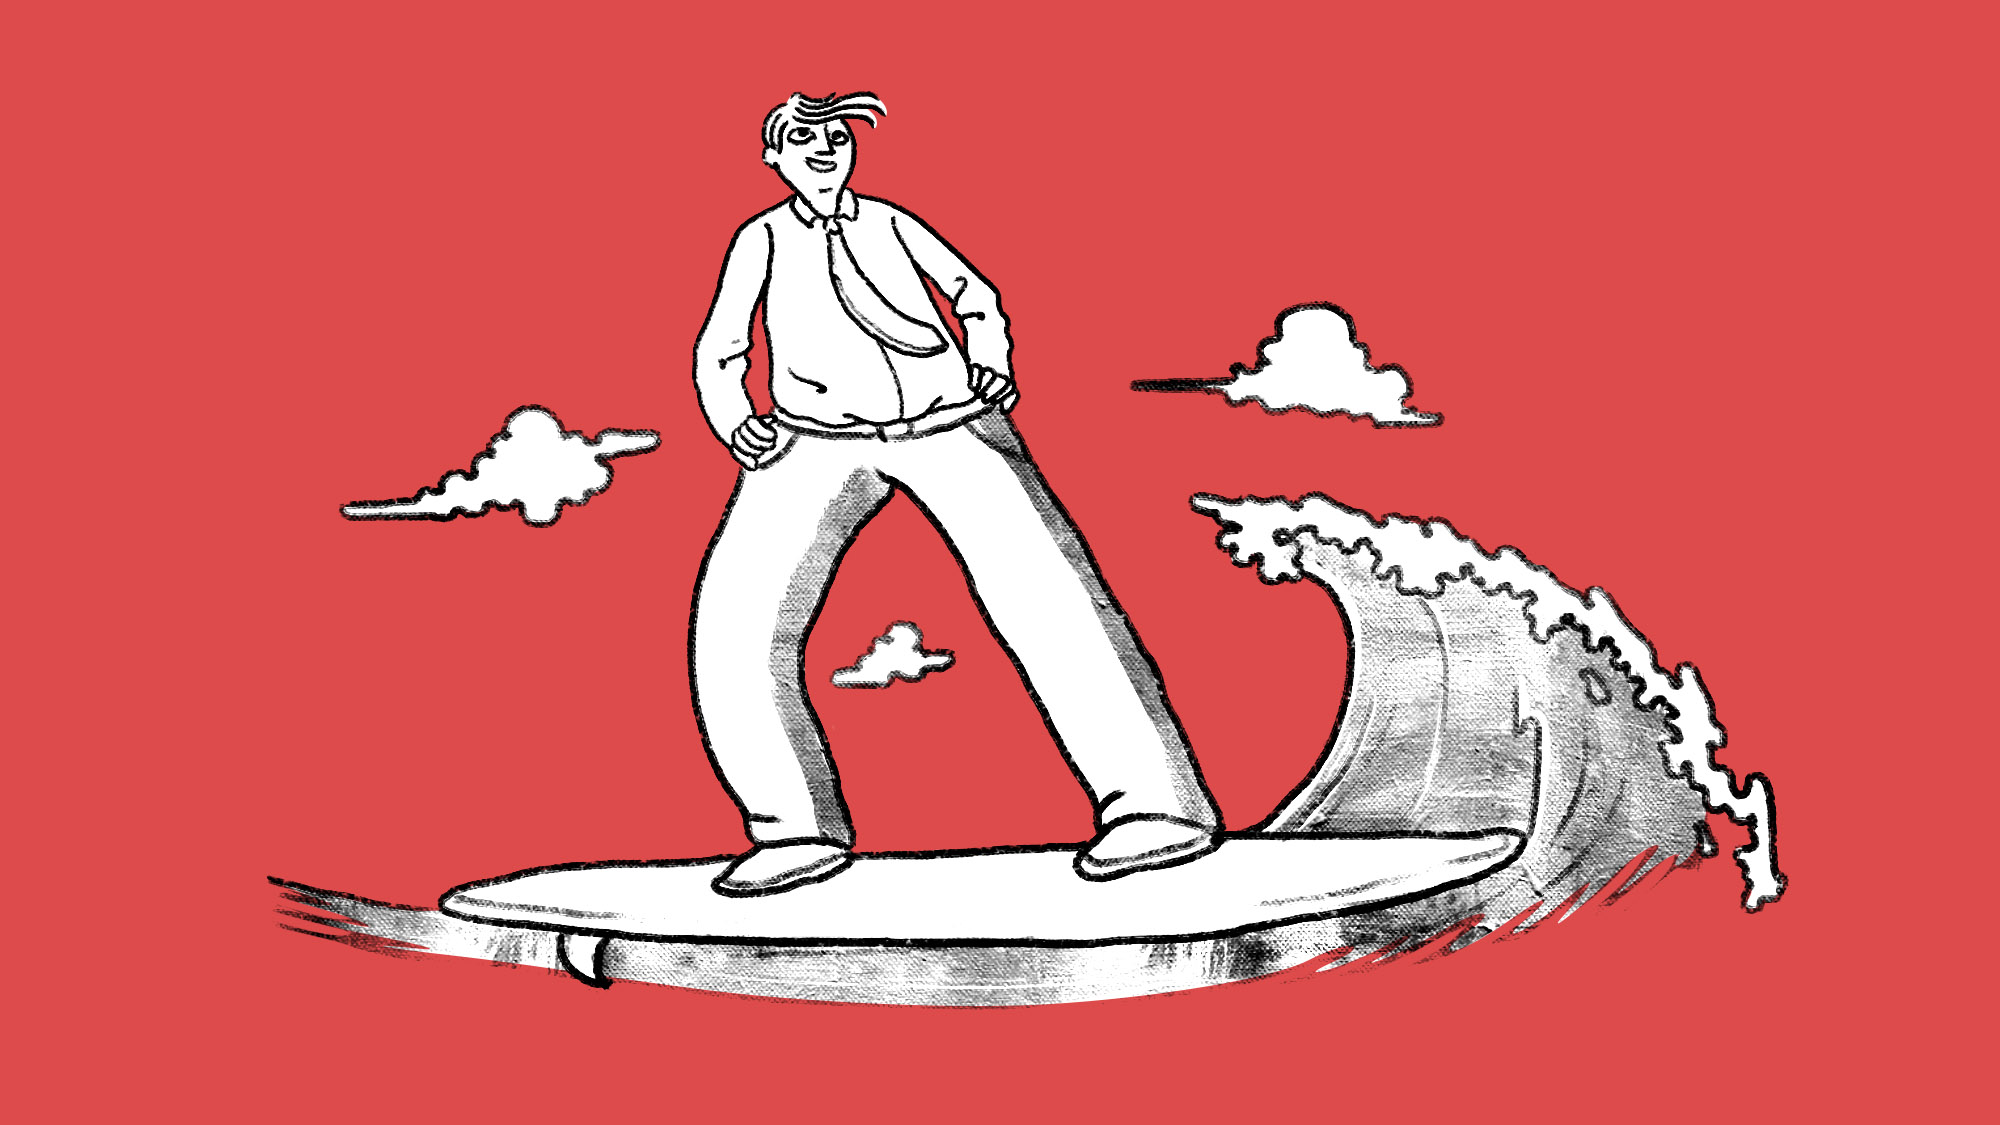 Illustrated man on a surfboard in a shirt and tie on a red background